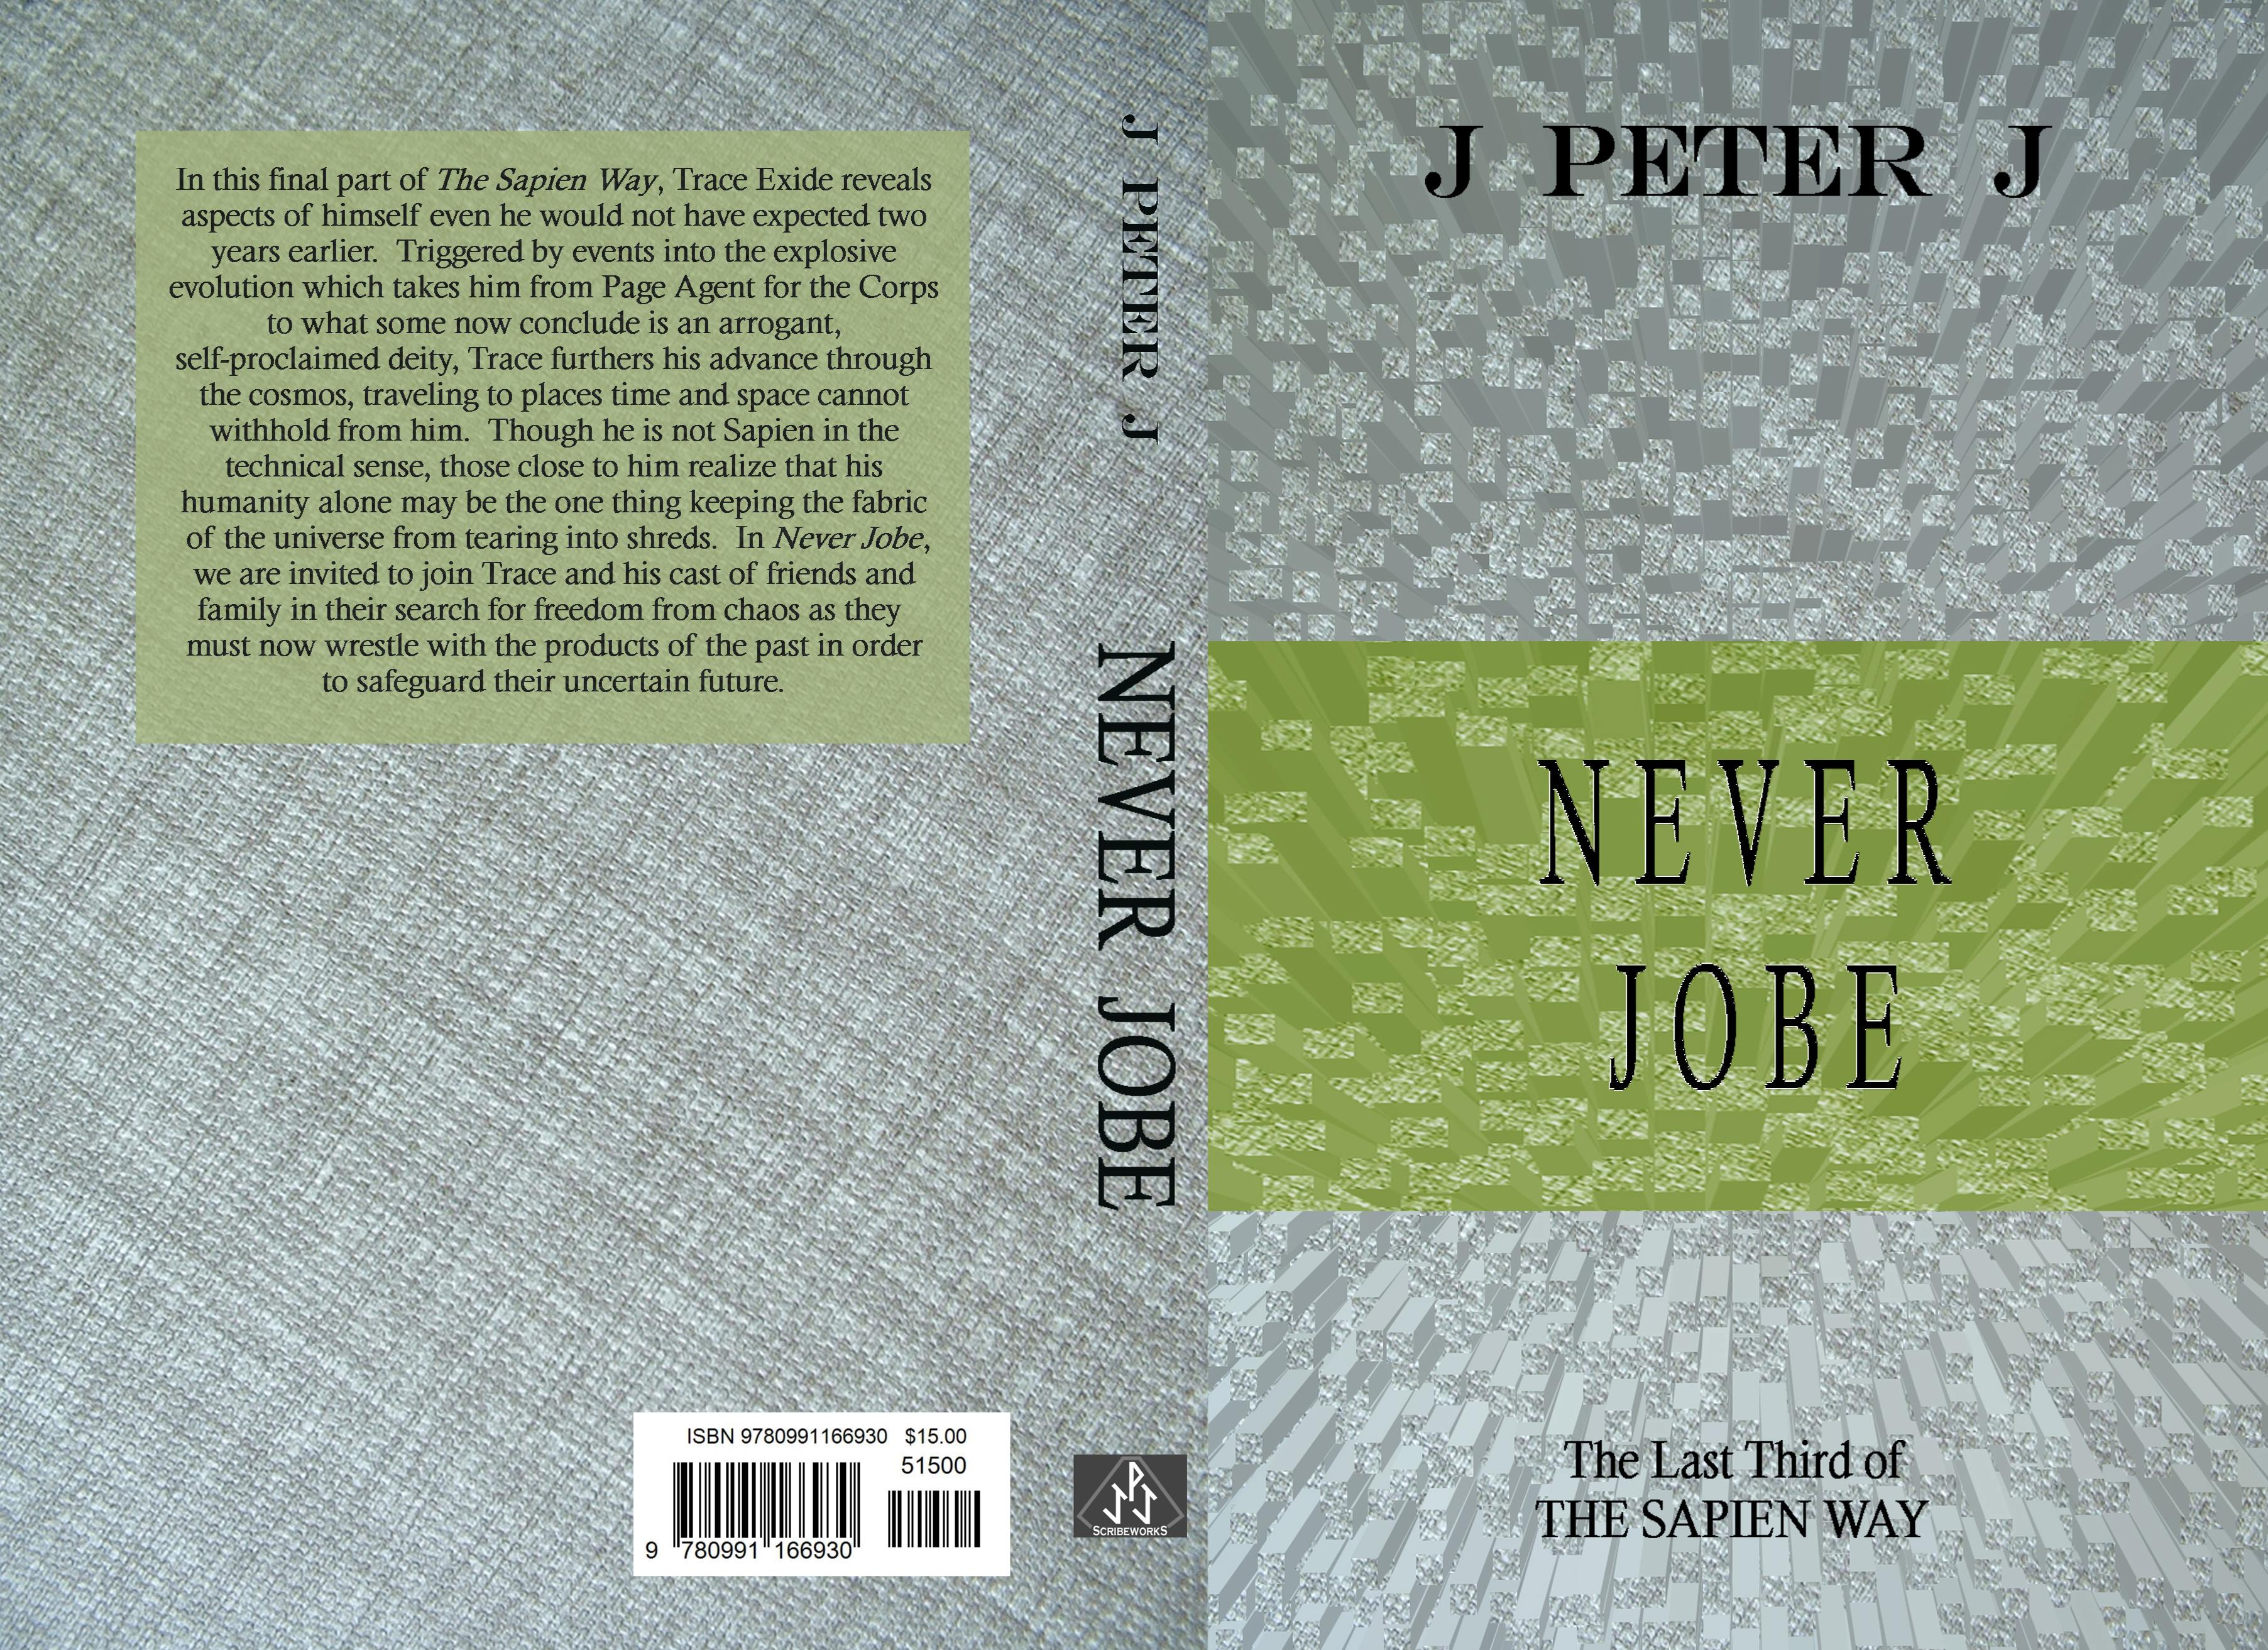 Never Jobe cover image